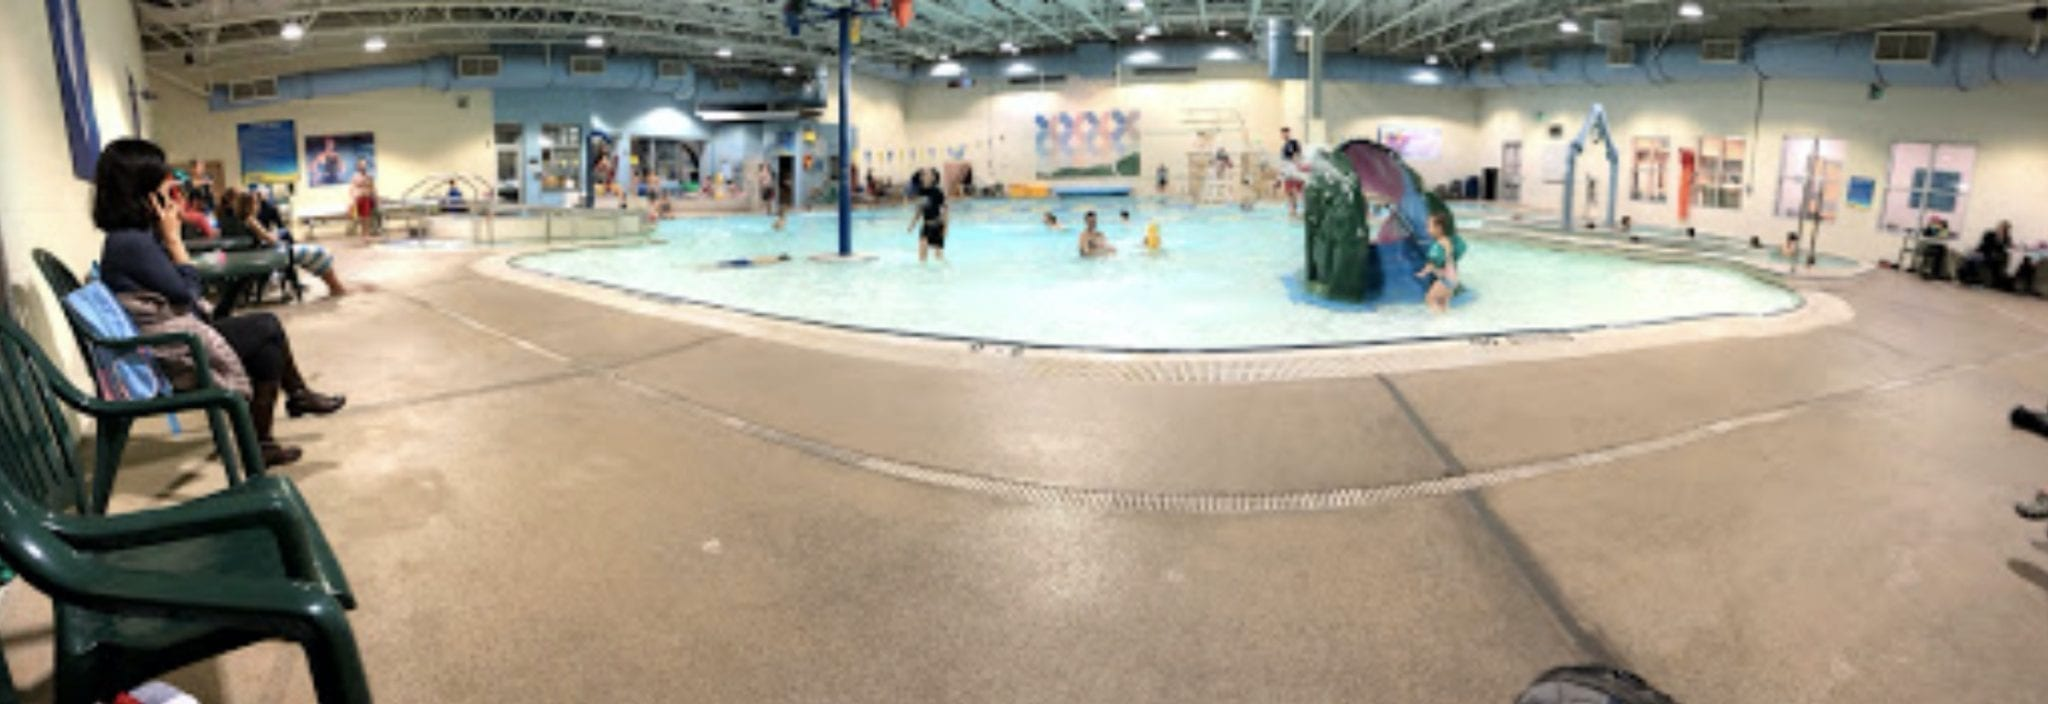 Bainbridge Island Aquatic Center